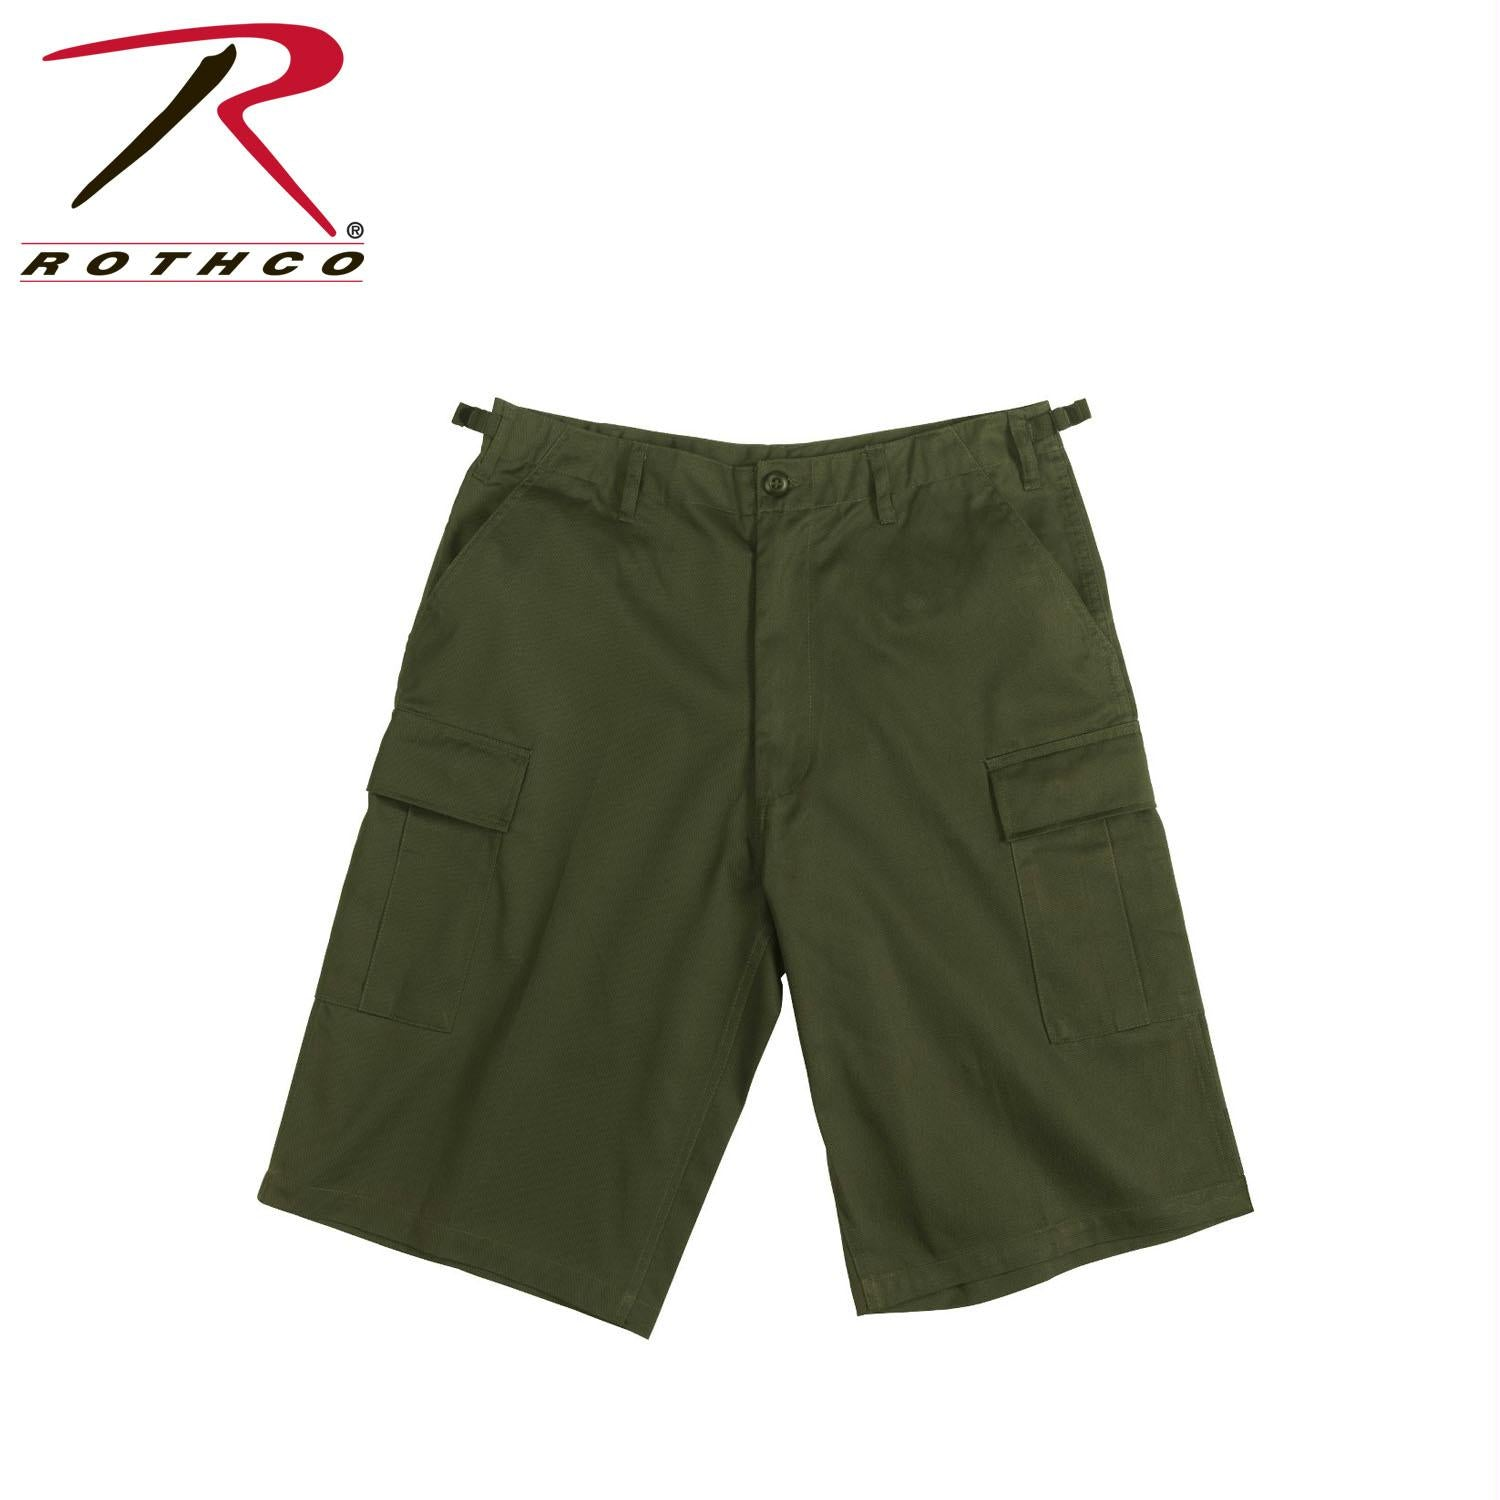 Rothco Long Length BDU Short - Olive Drab / 3XL